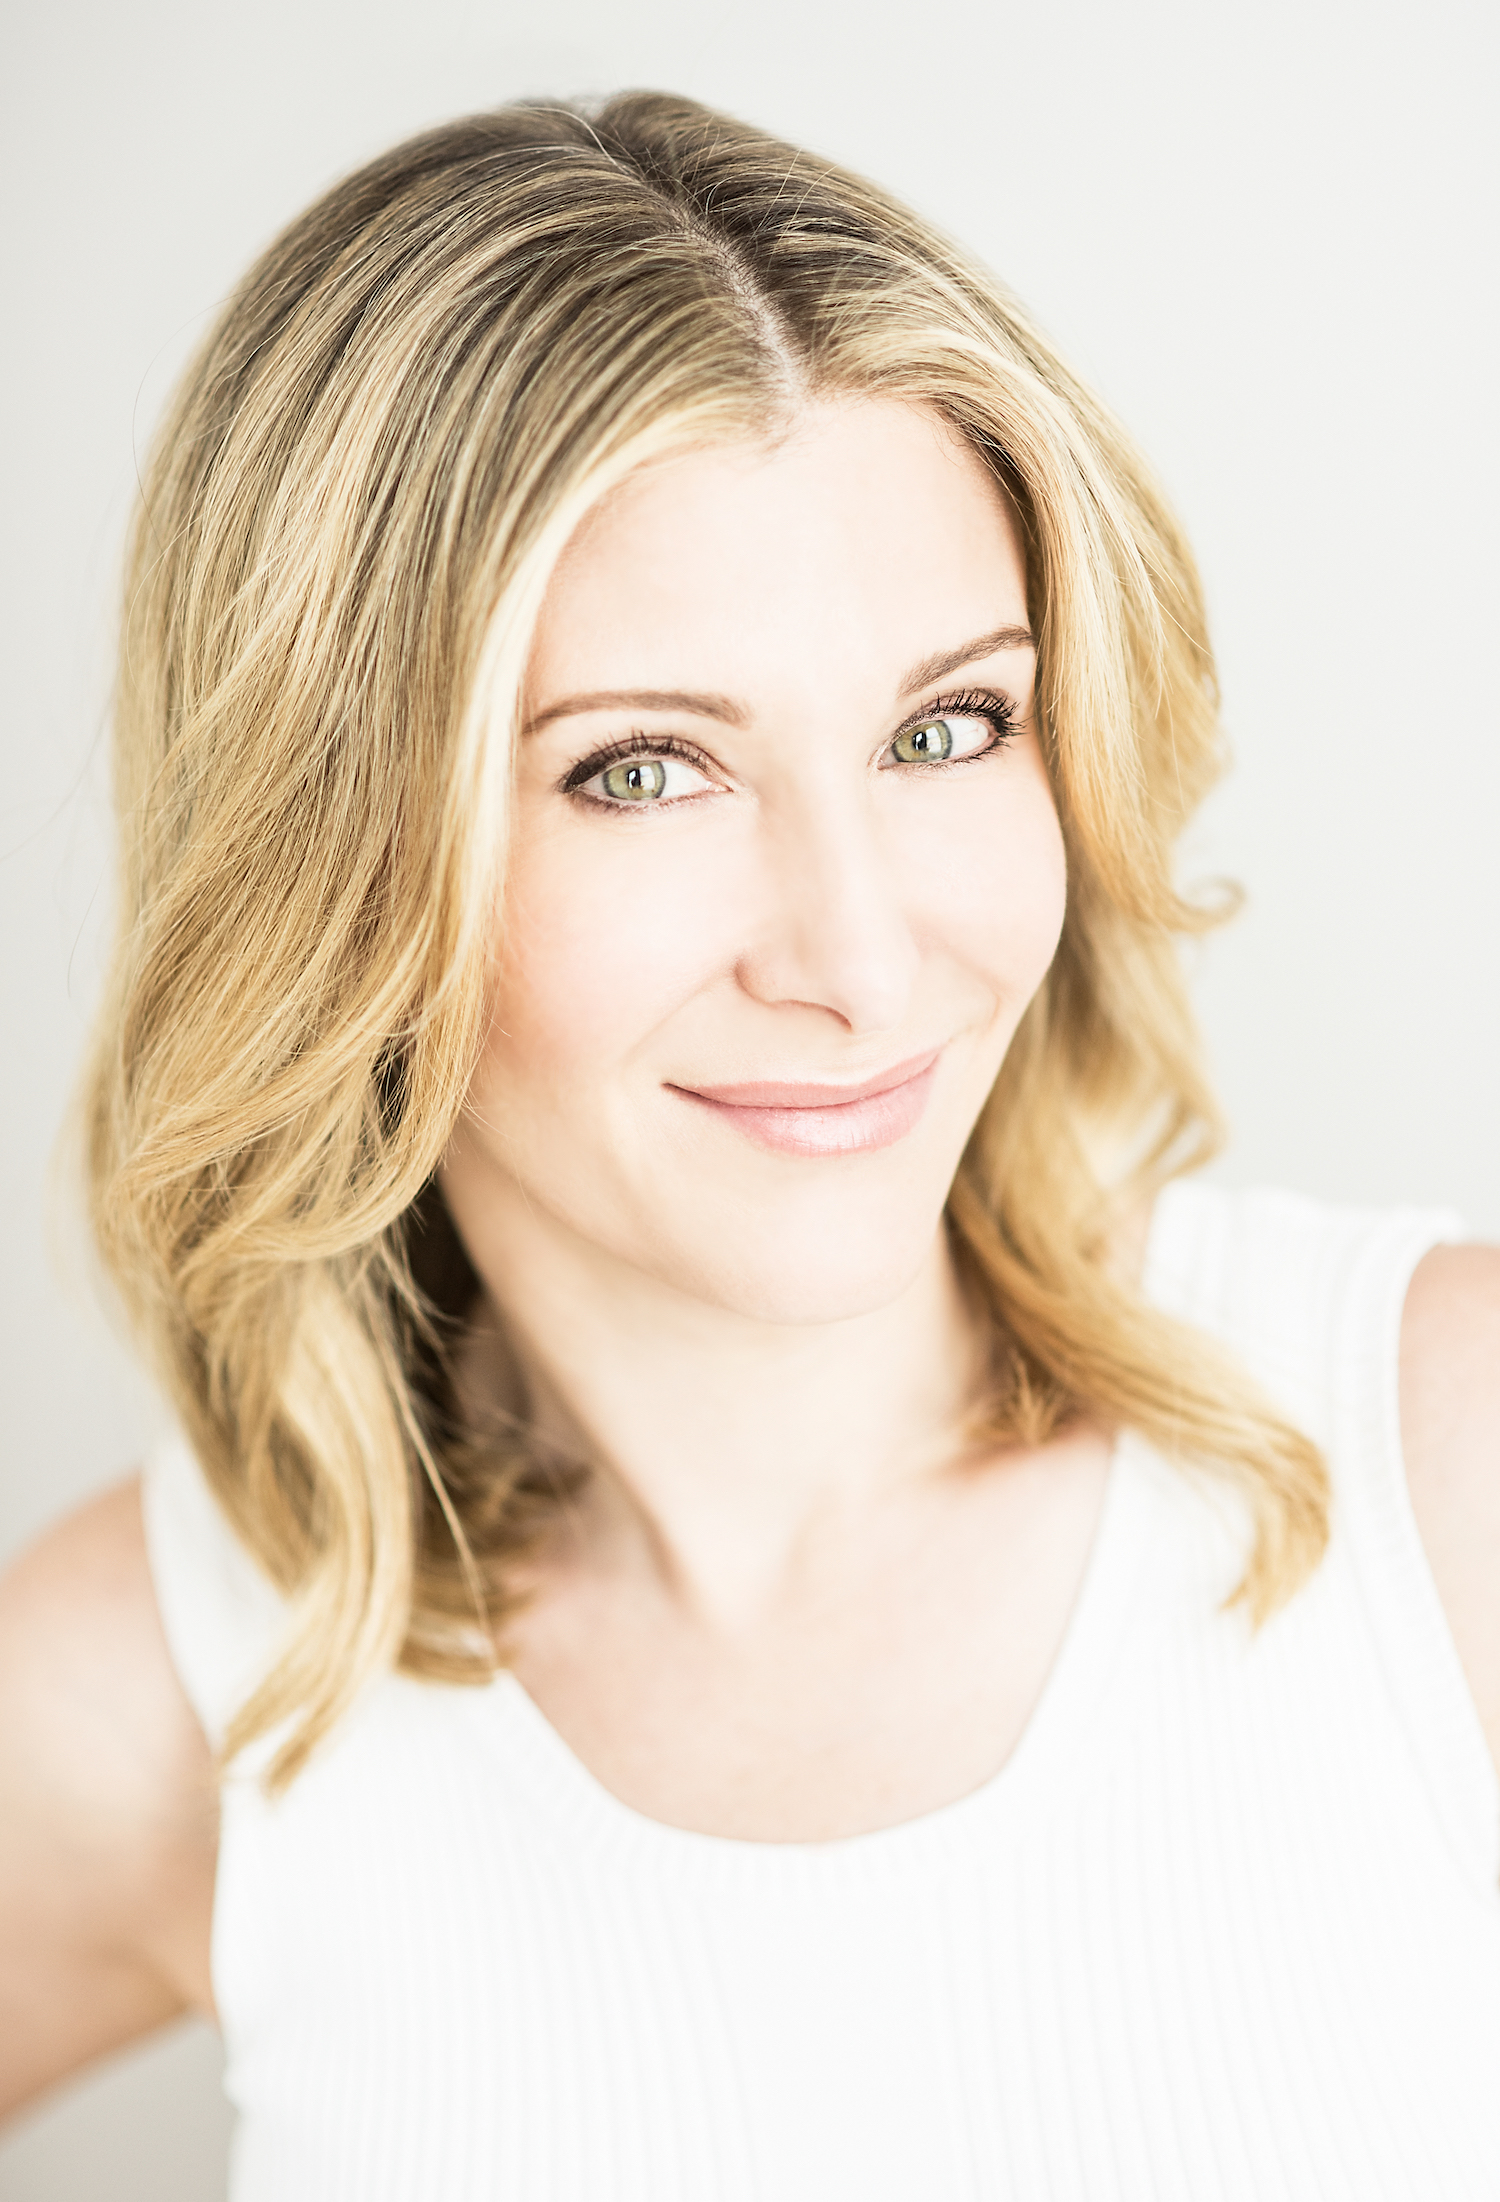 Meet Jenny patinkin: Beauty expert and Author of  Lazy Perfection: The Art of Looking Great Without Really Trying